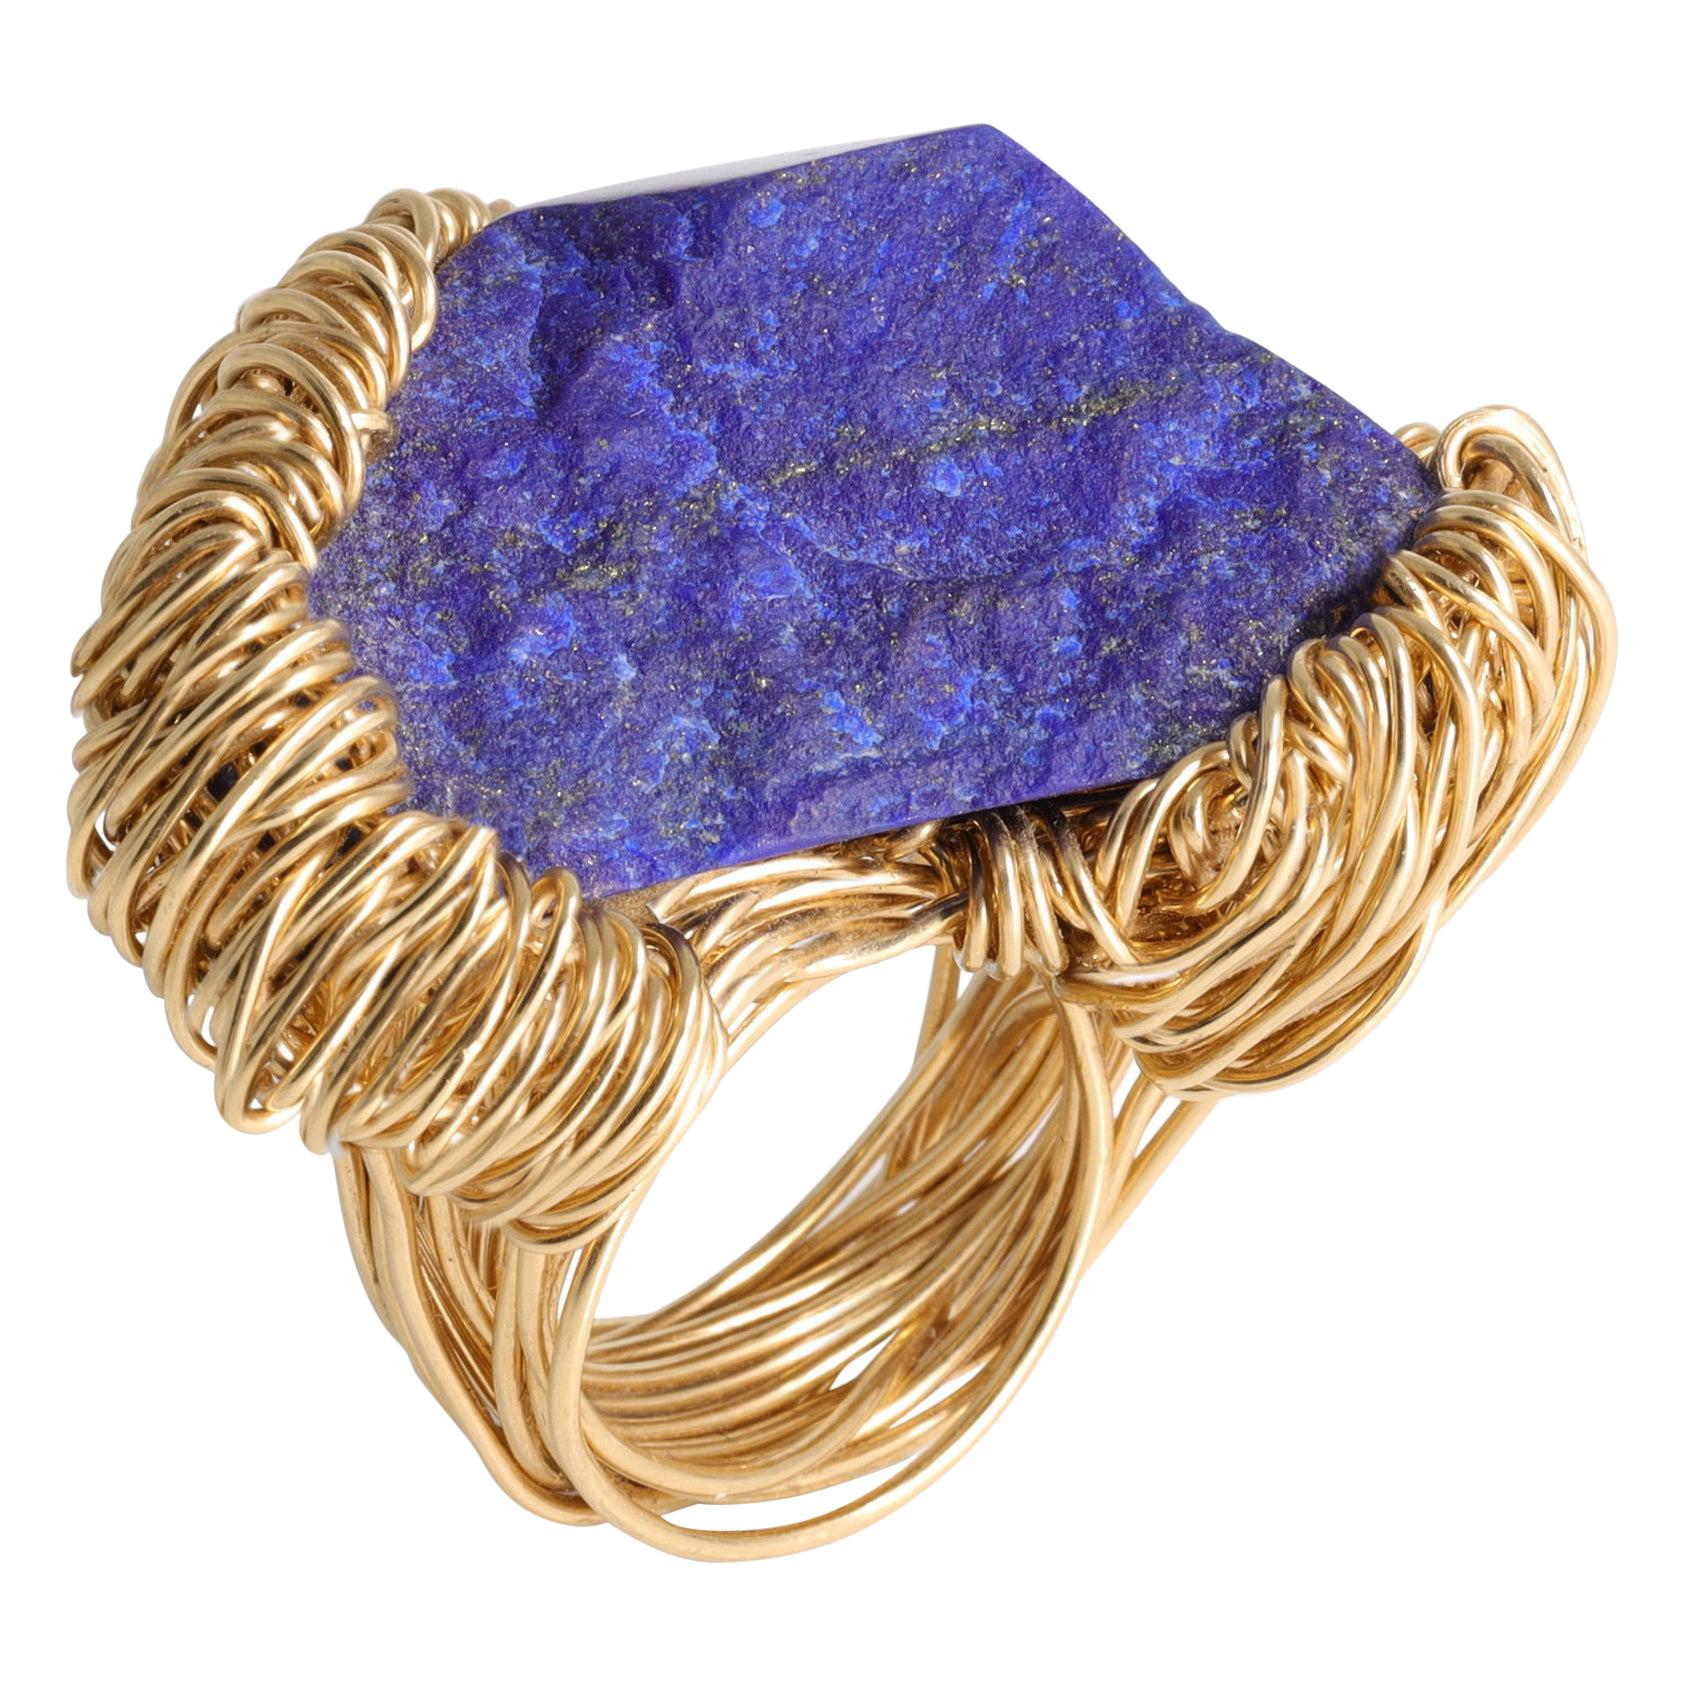 Bluest Lapis Lazuli Statement Cocktail Ring by Sheila Westera London in Stock